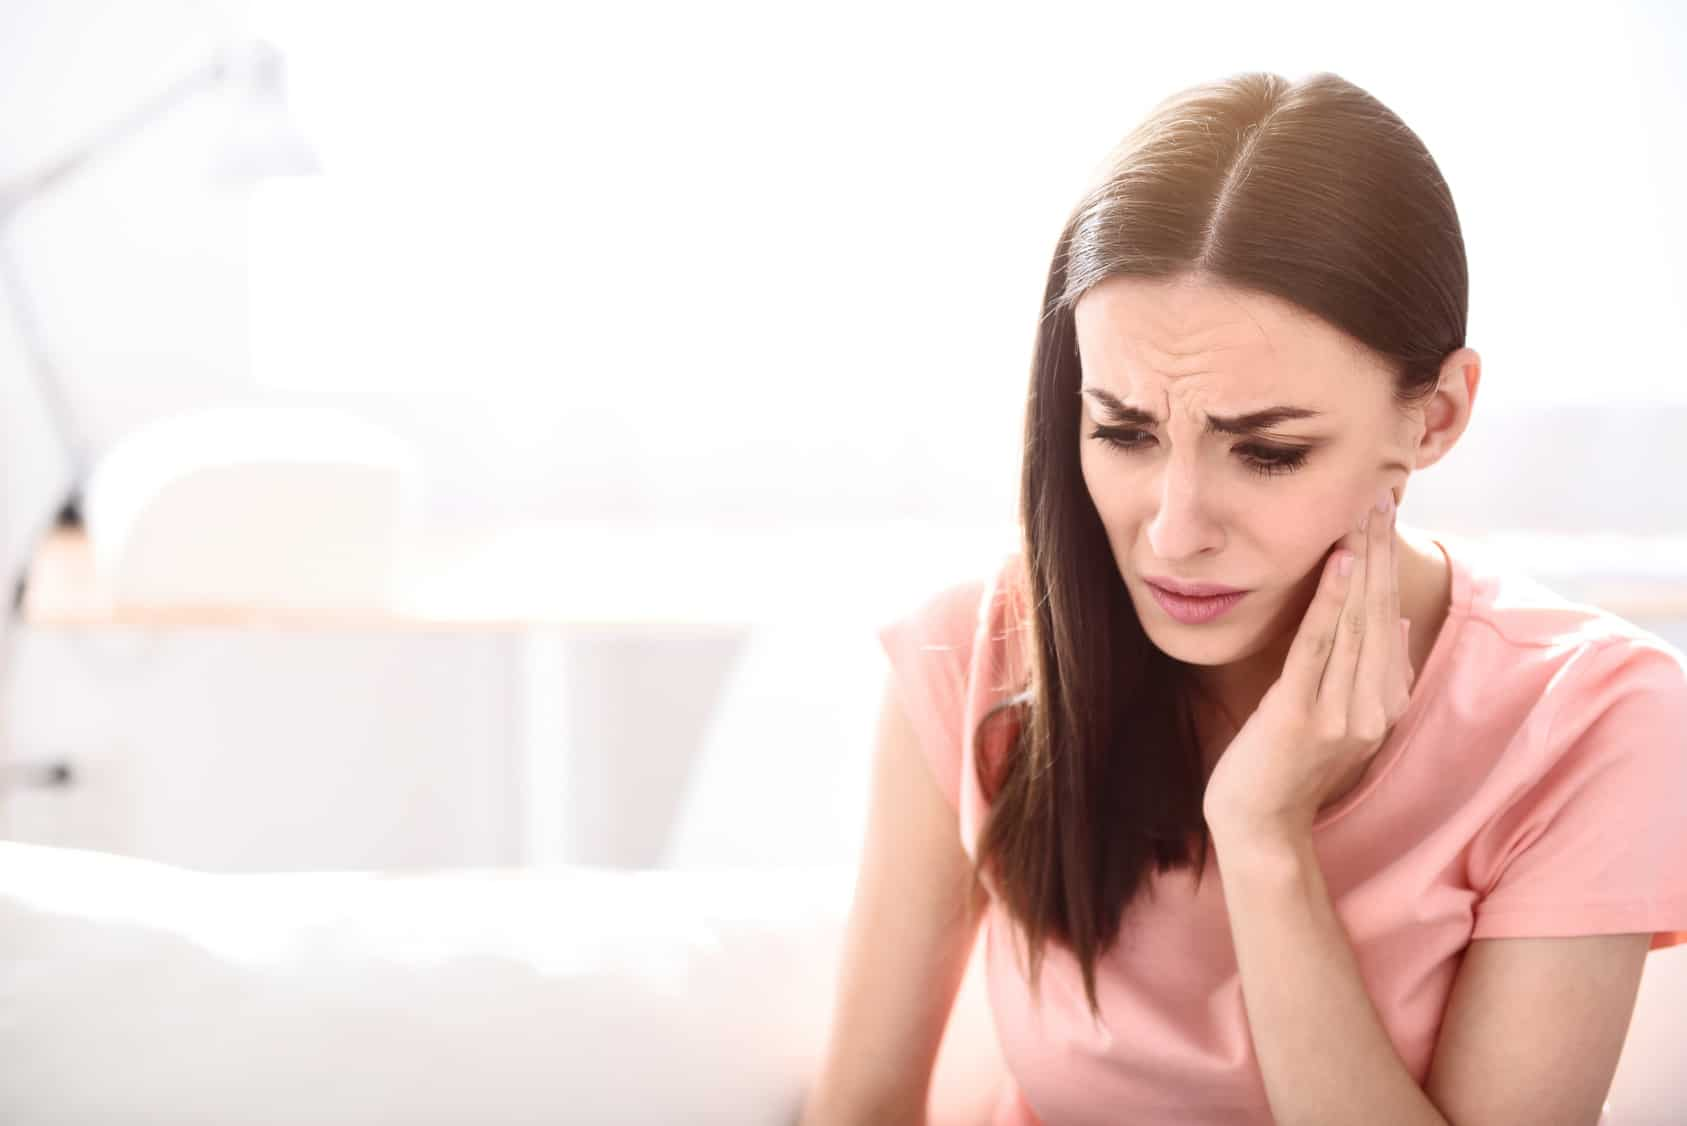 Get relief from jaw pain with TMJ treatment